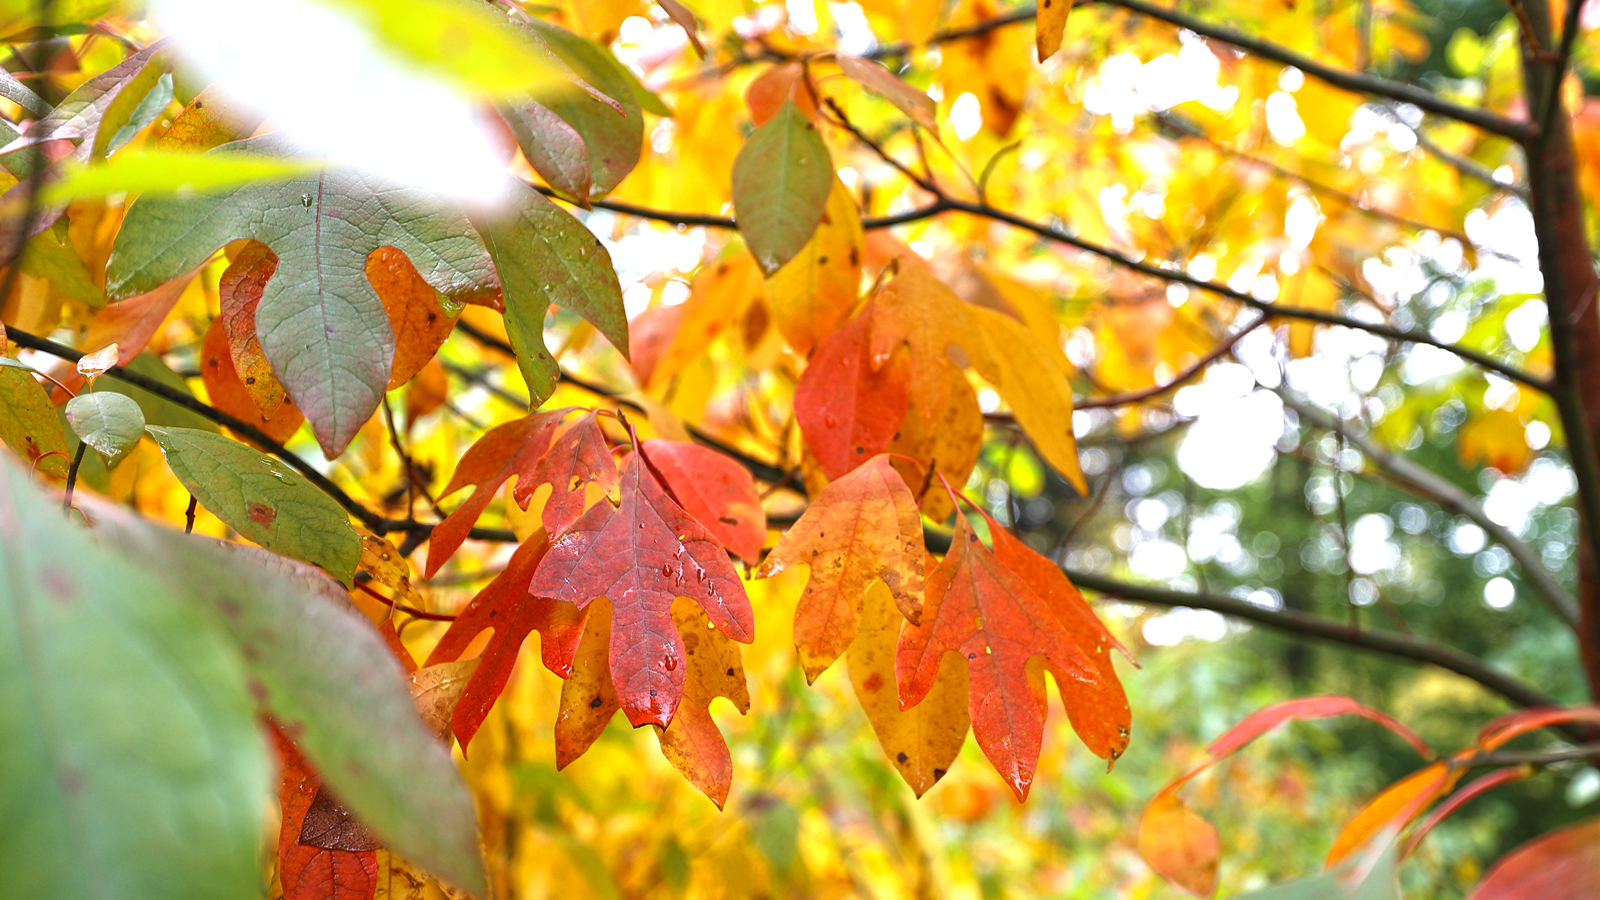 sassafras leaves with autumn color